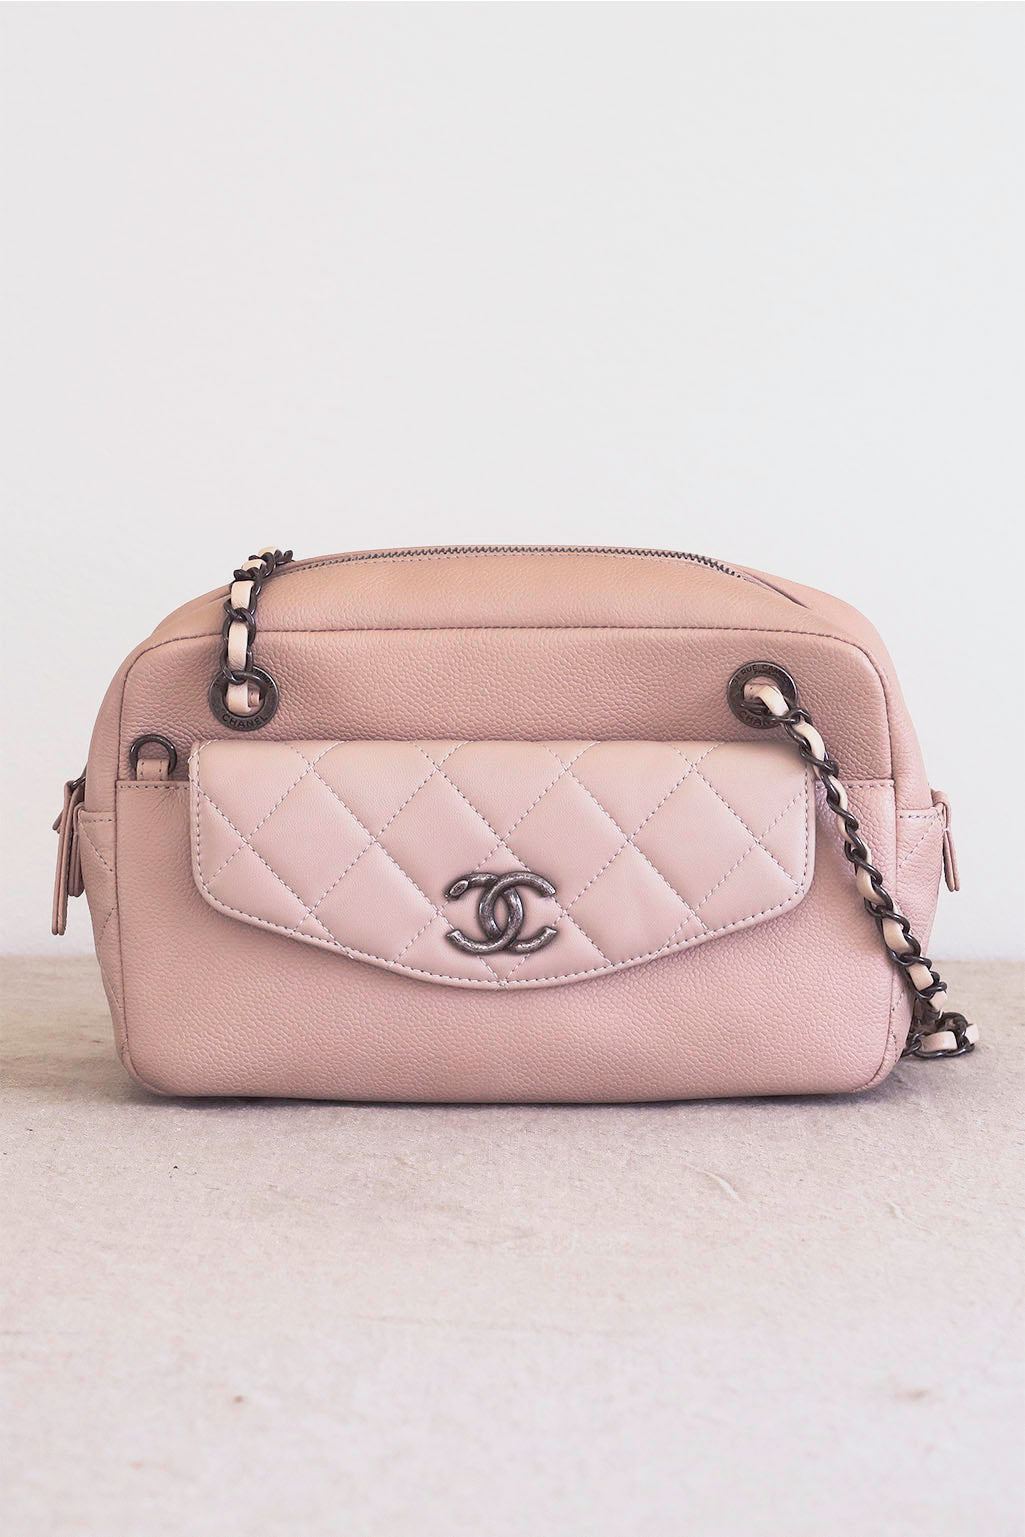 Chanel Camera Case Bag